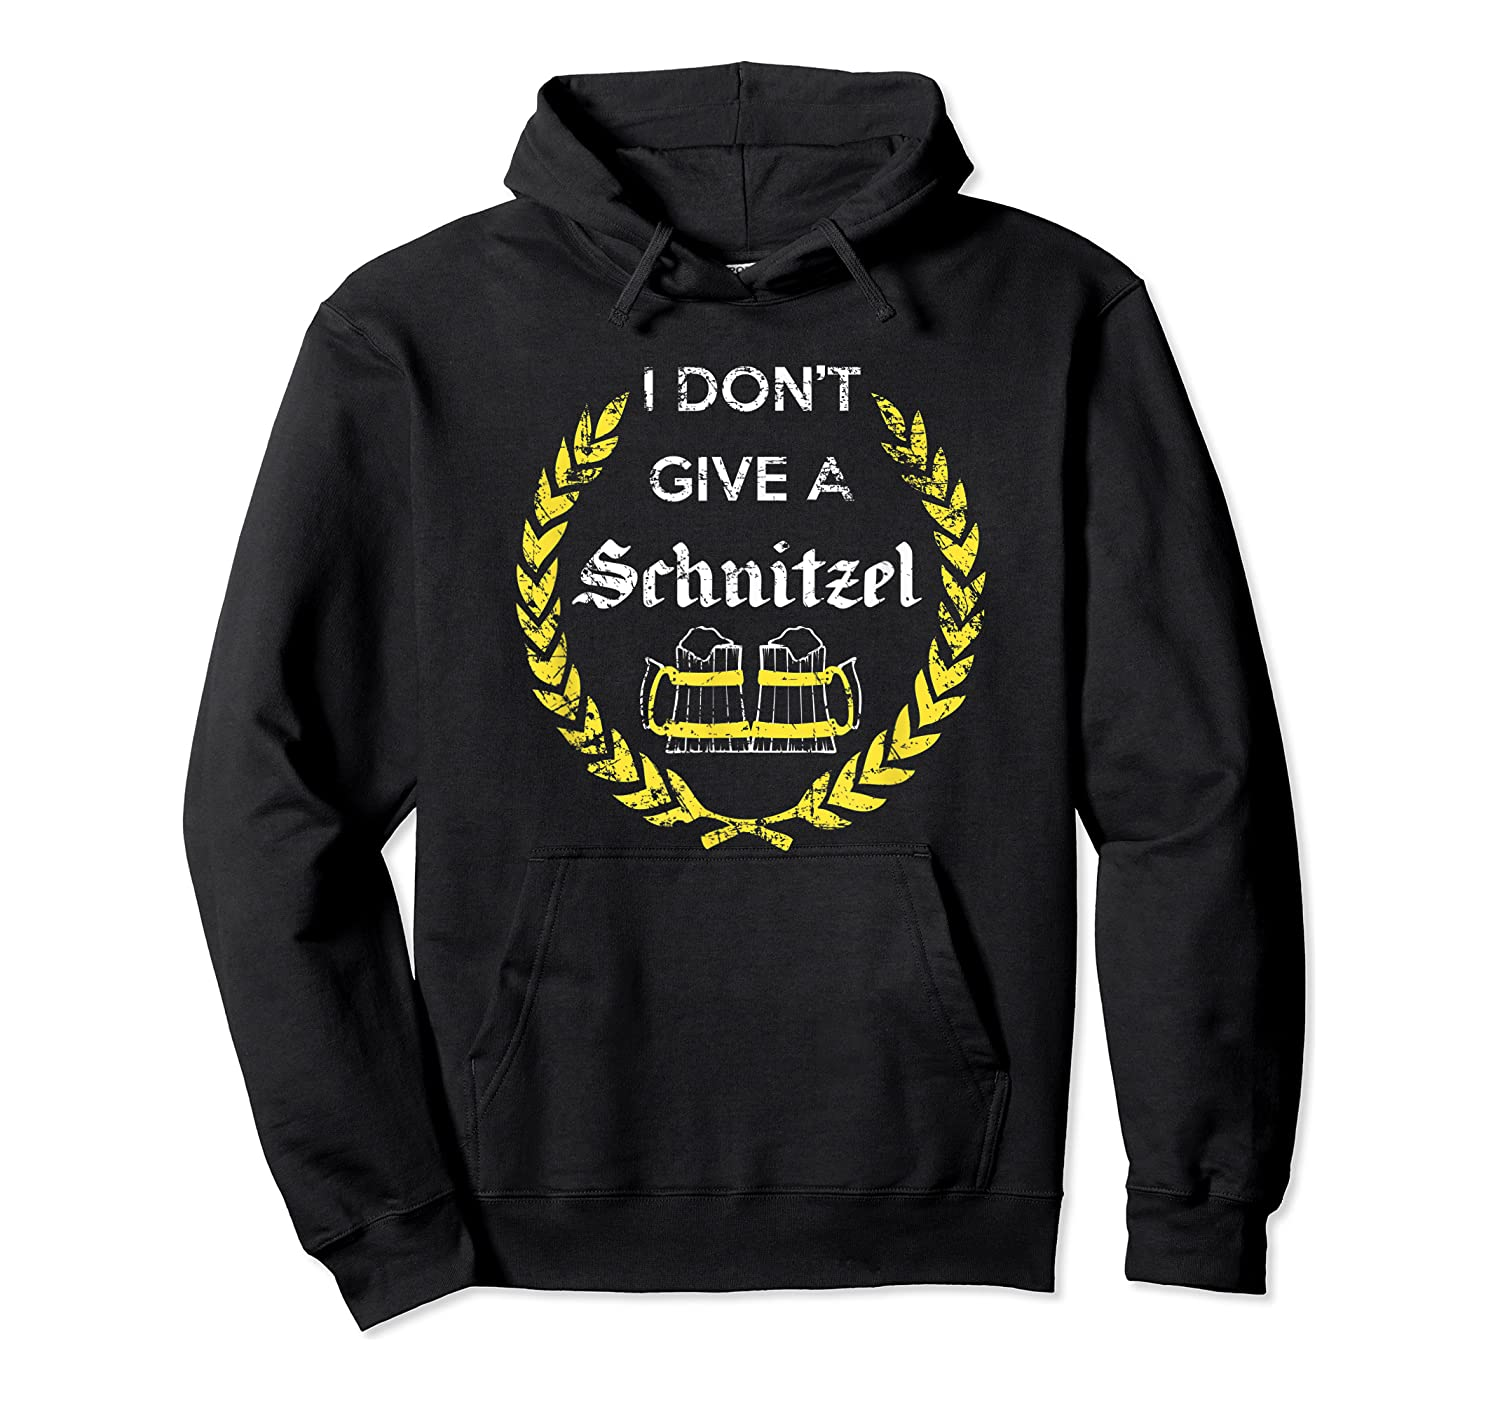 I Don't Give A Schnitzel Shirt, Funny Beer Drinking Gift Unisex Pullover Hoodie